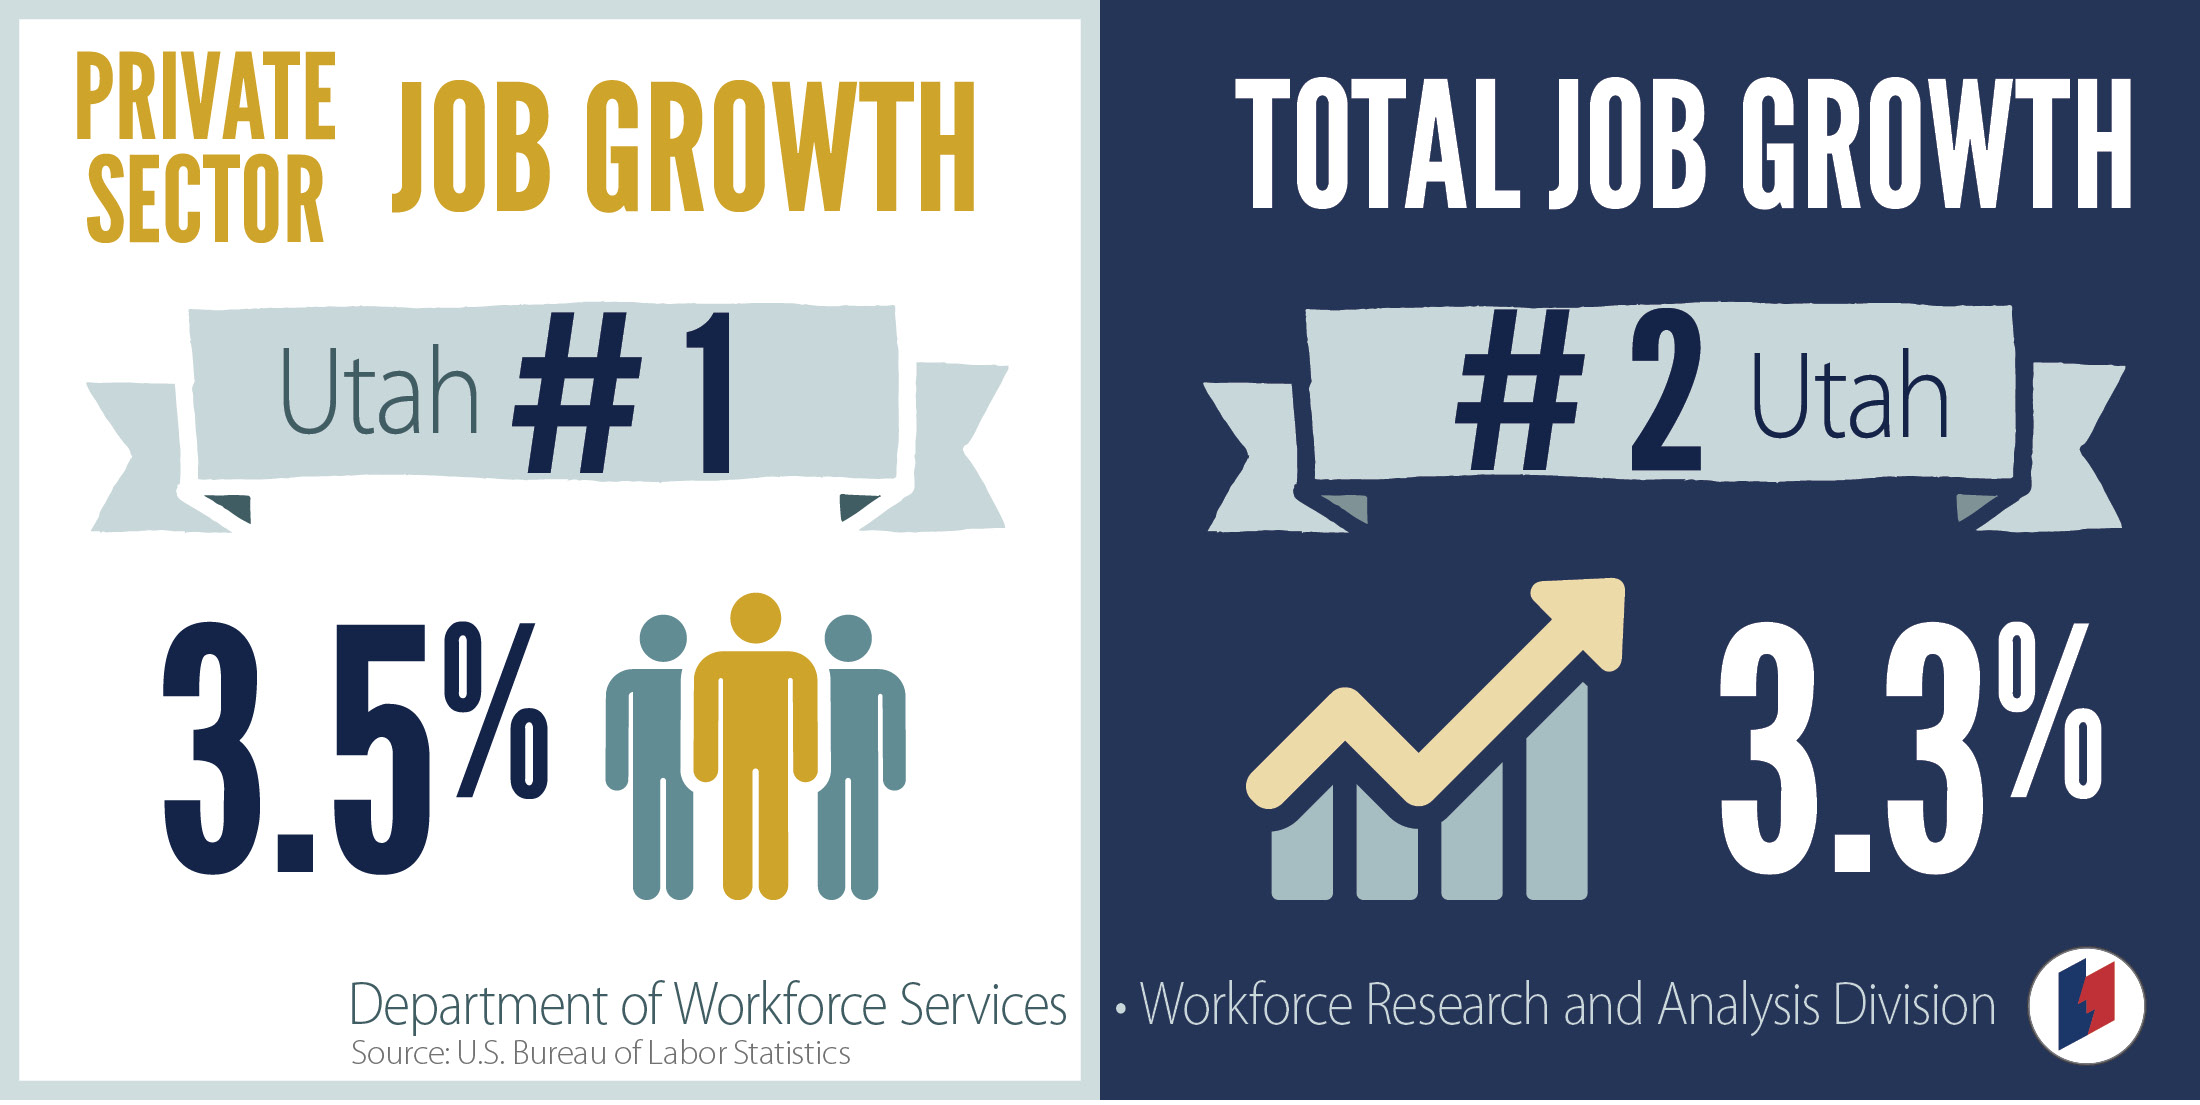 Utah job growth ranks 1 in nation information originally posted on jobsutah publicscrutiny Choice Image